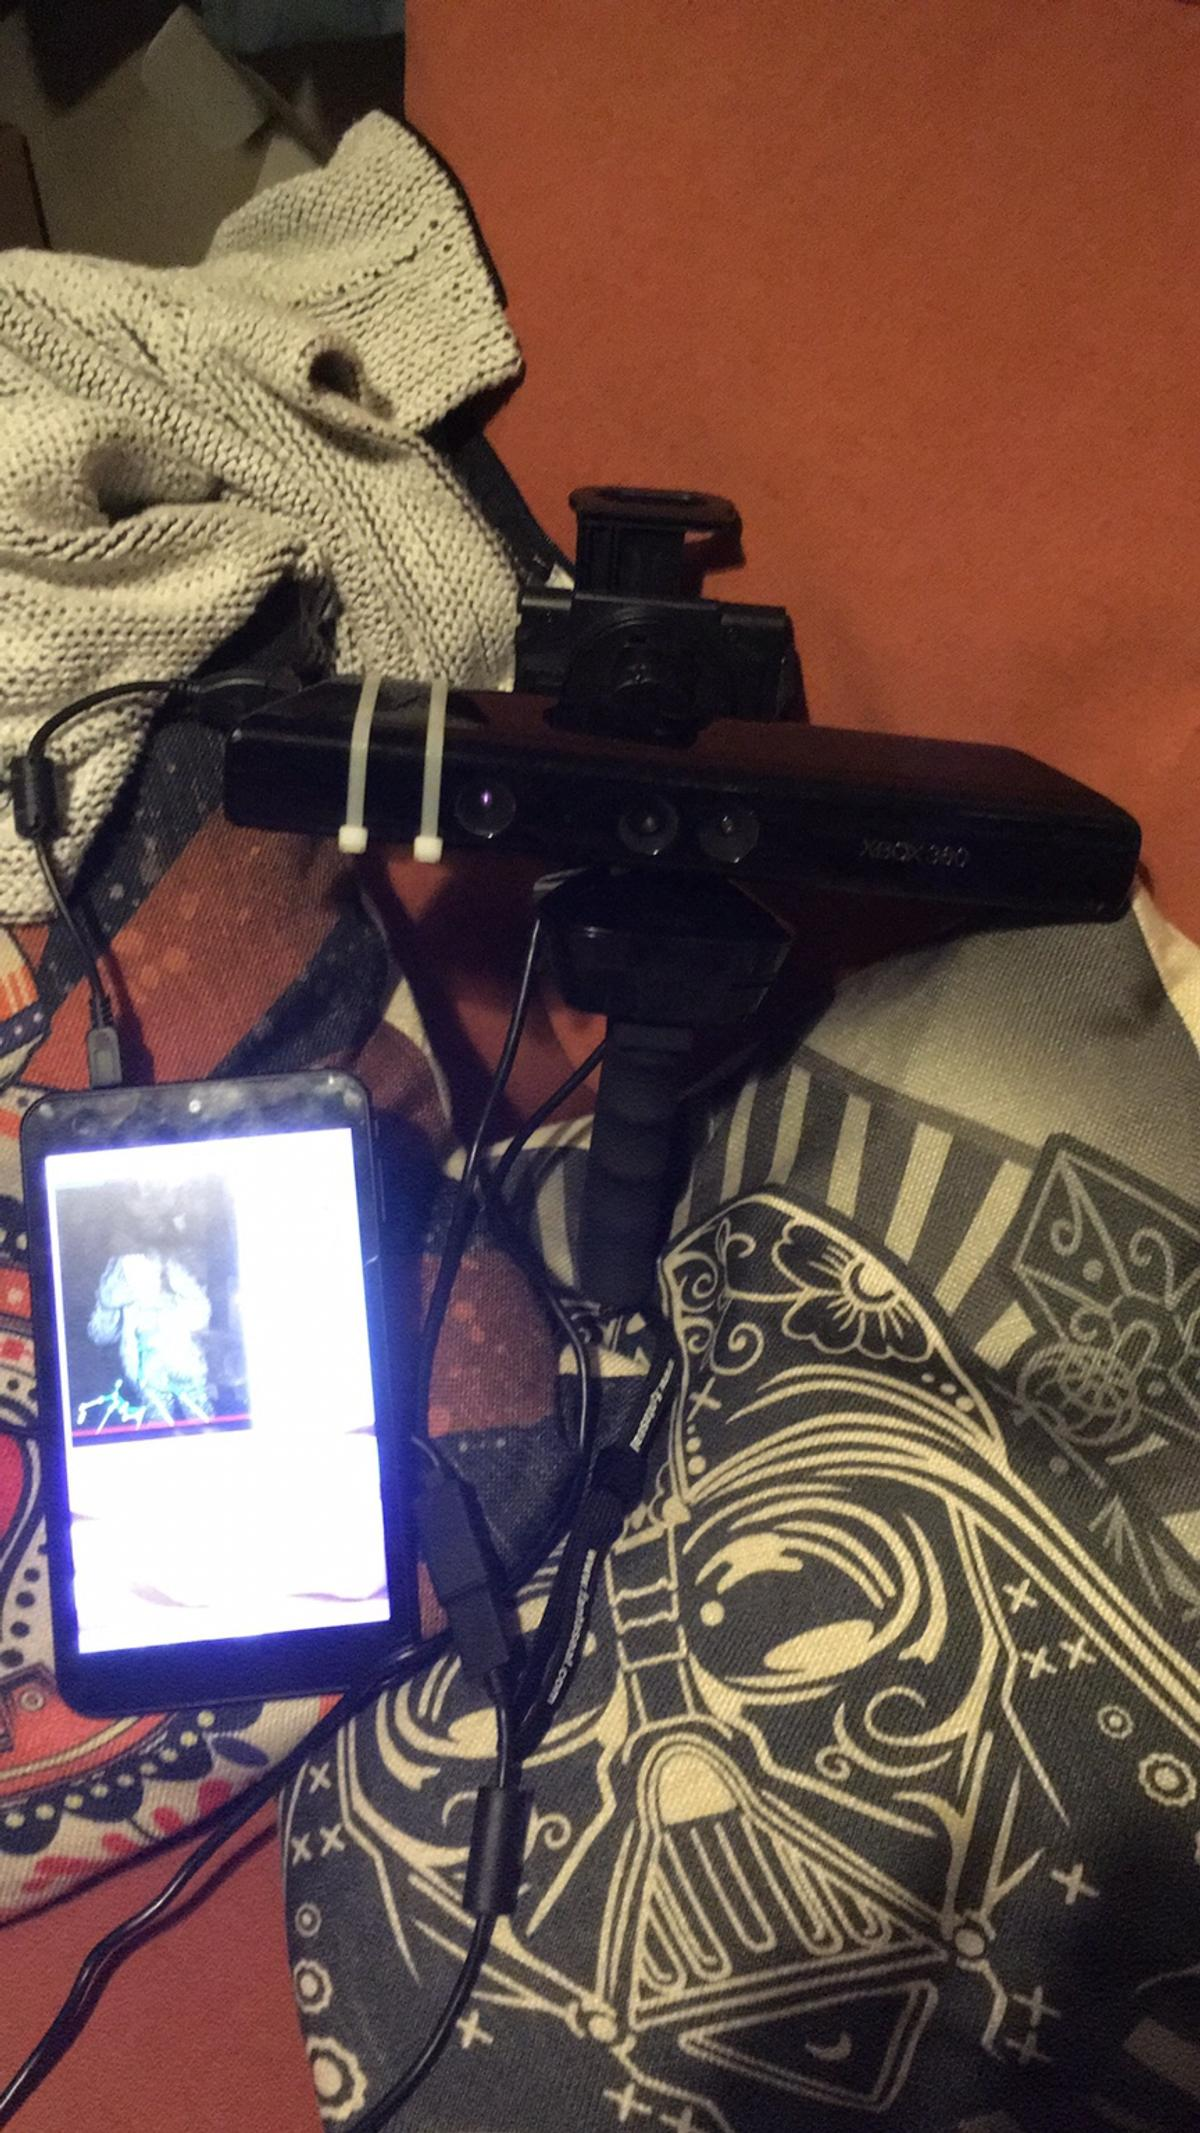 Kinect SLS Ghost Hunting Camera Rig in DY6 Dudley for